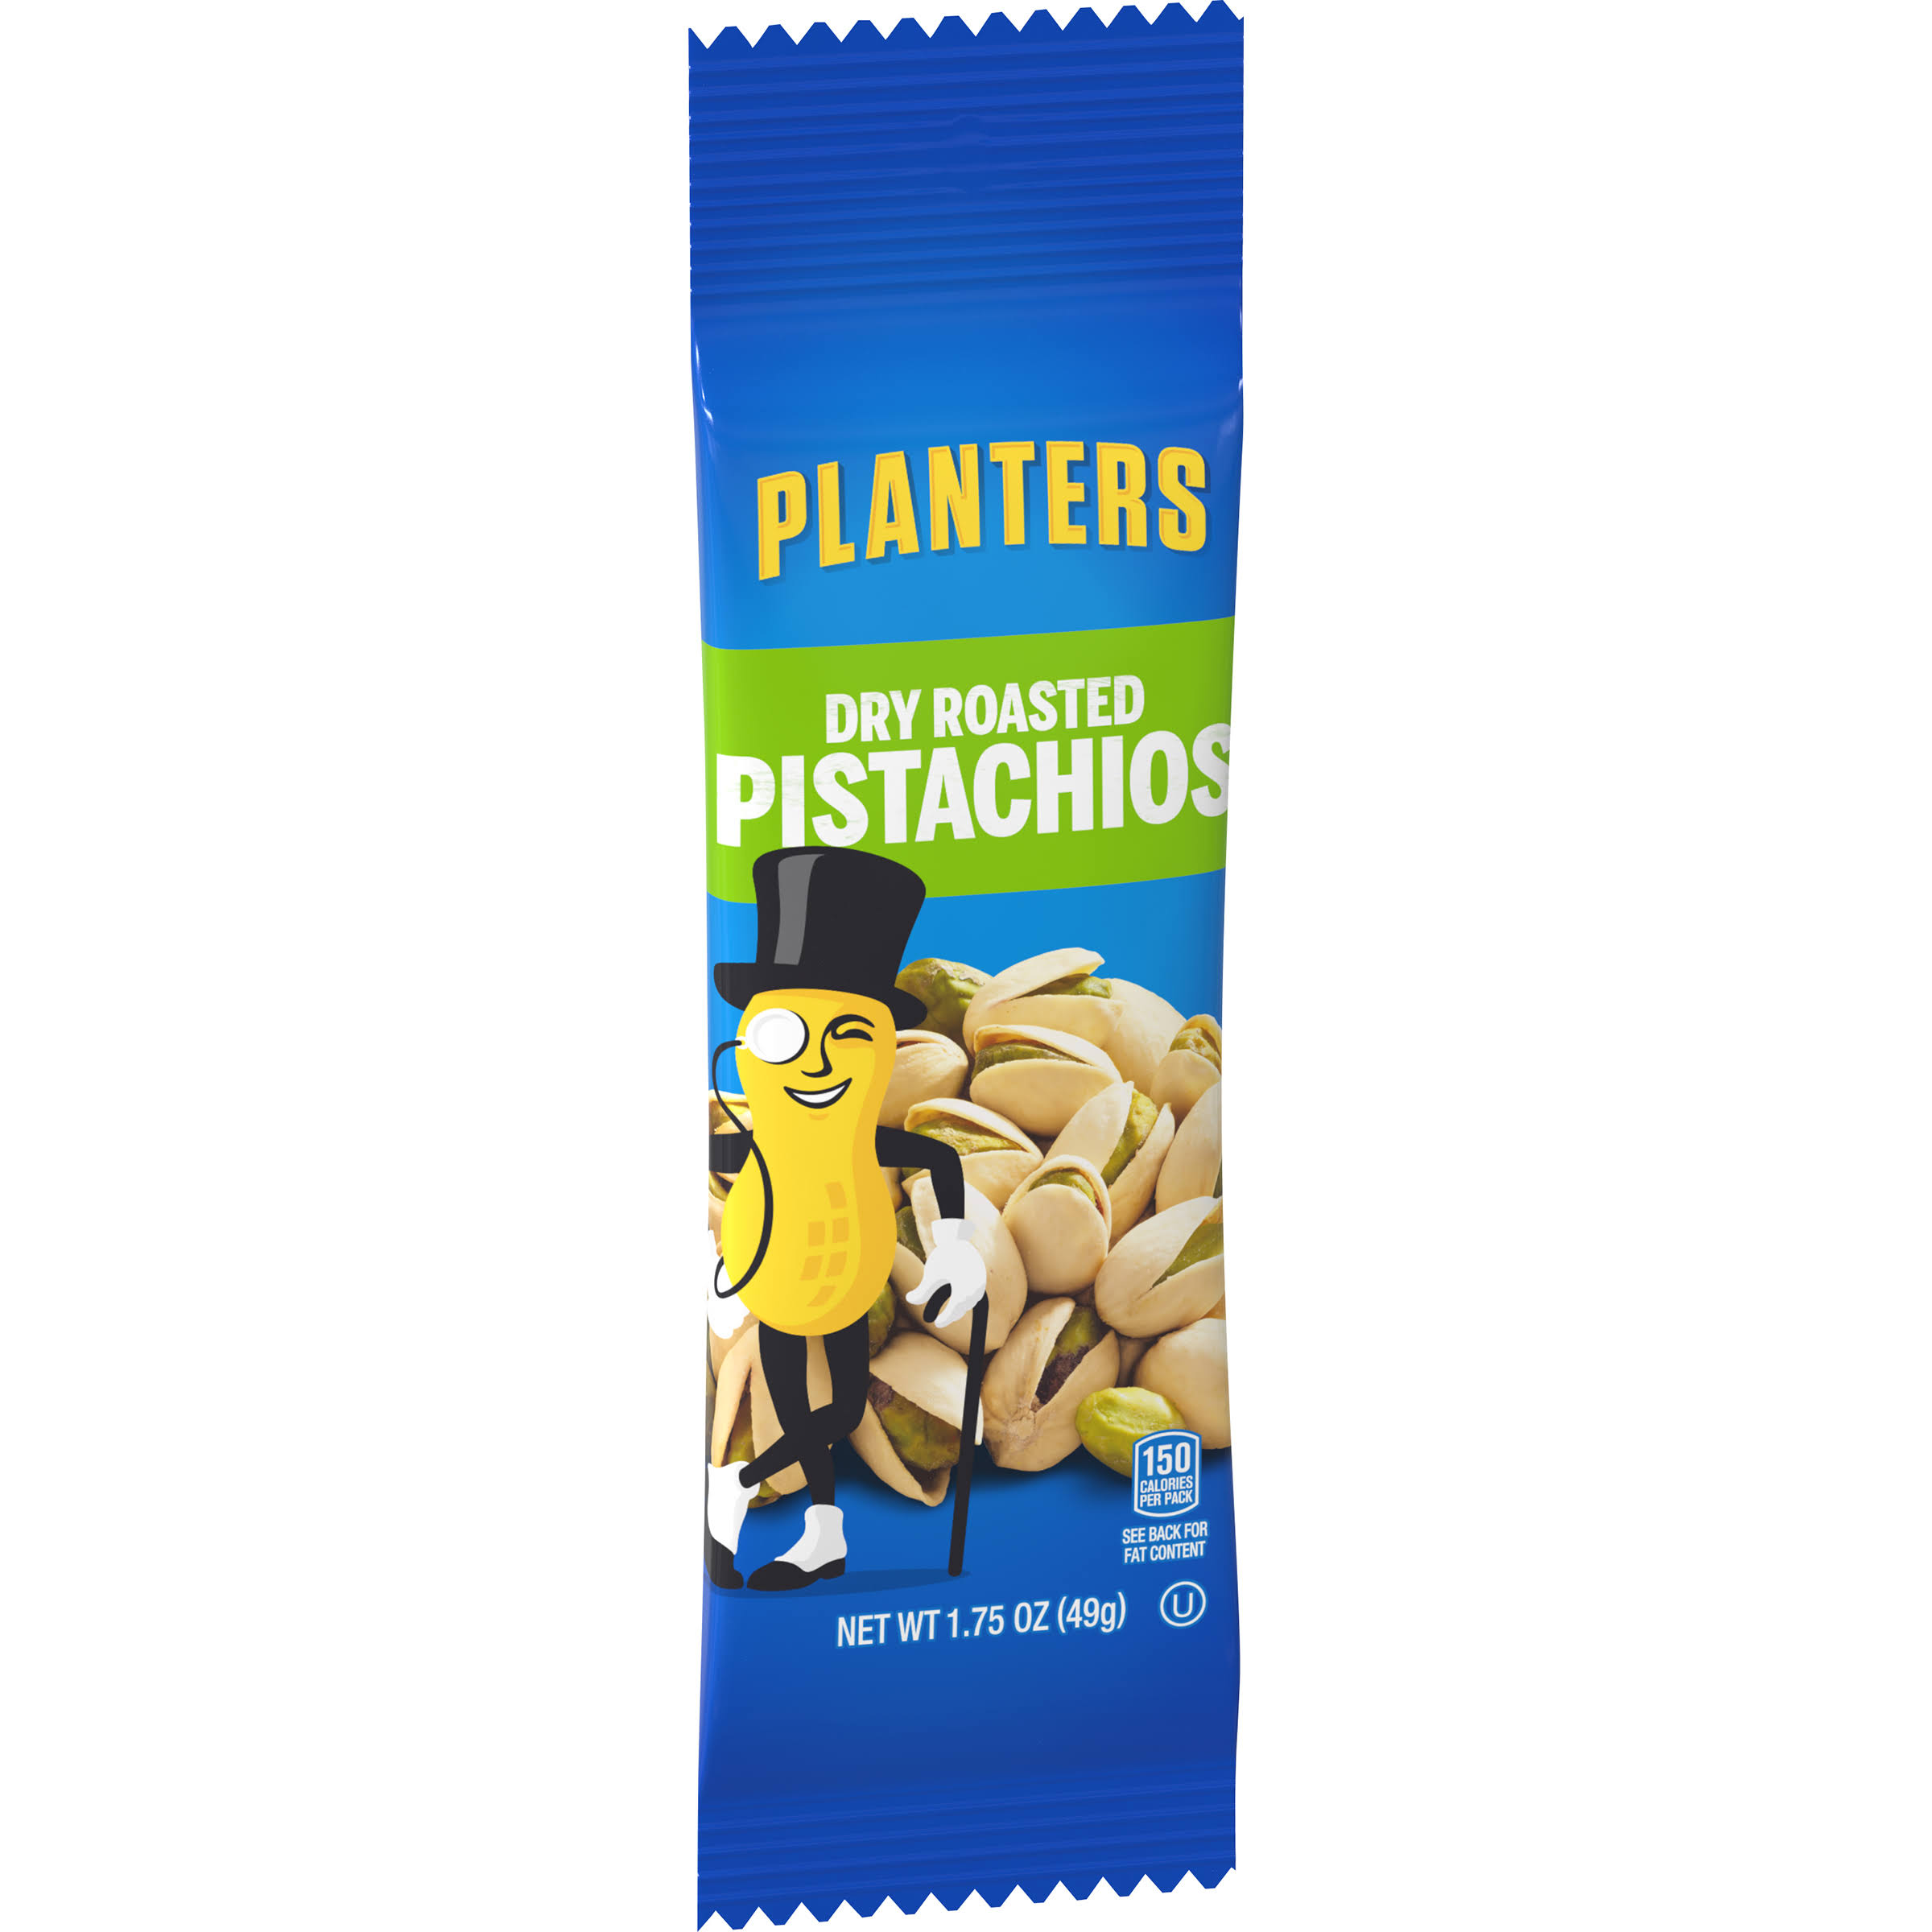 Kraft Planters Dry Roasted Pistachios - 1.75 oz